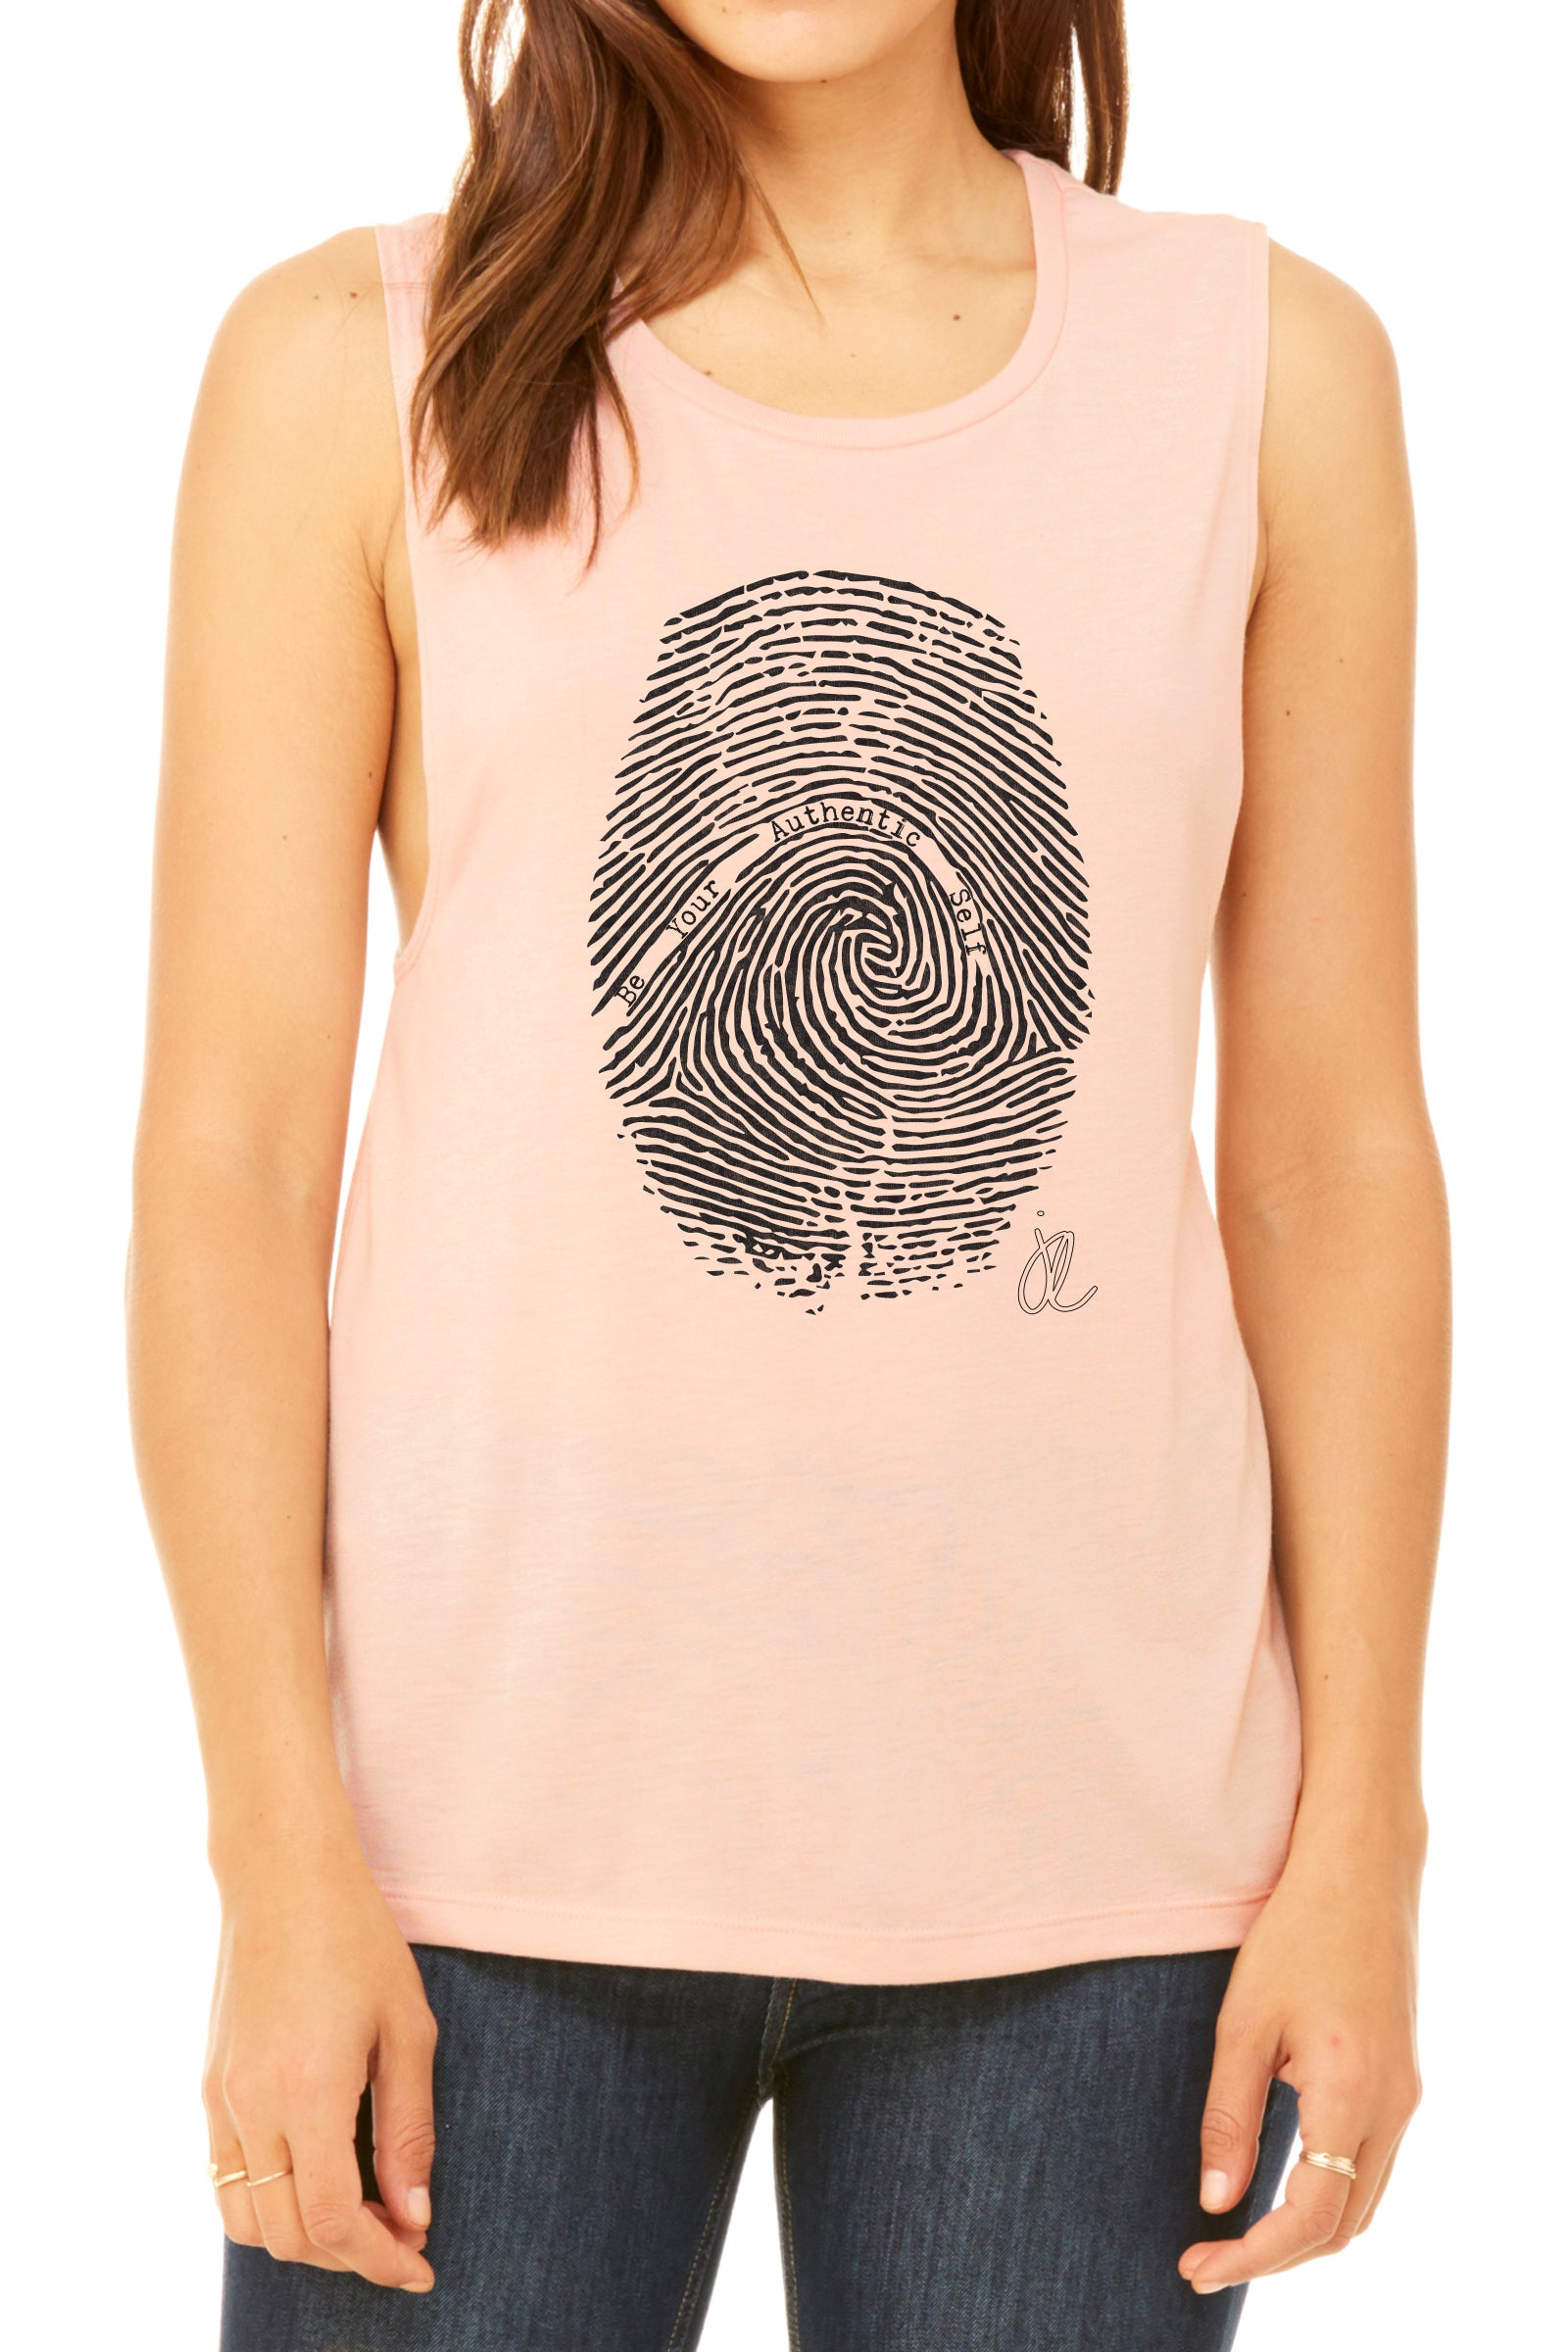 FINGER PRINT Women's Scoop Muscle